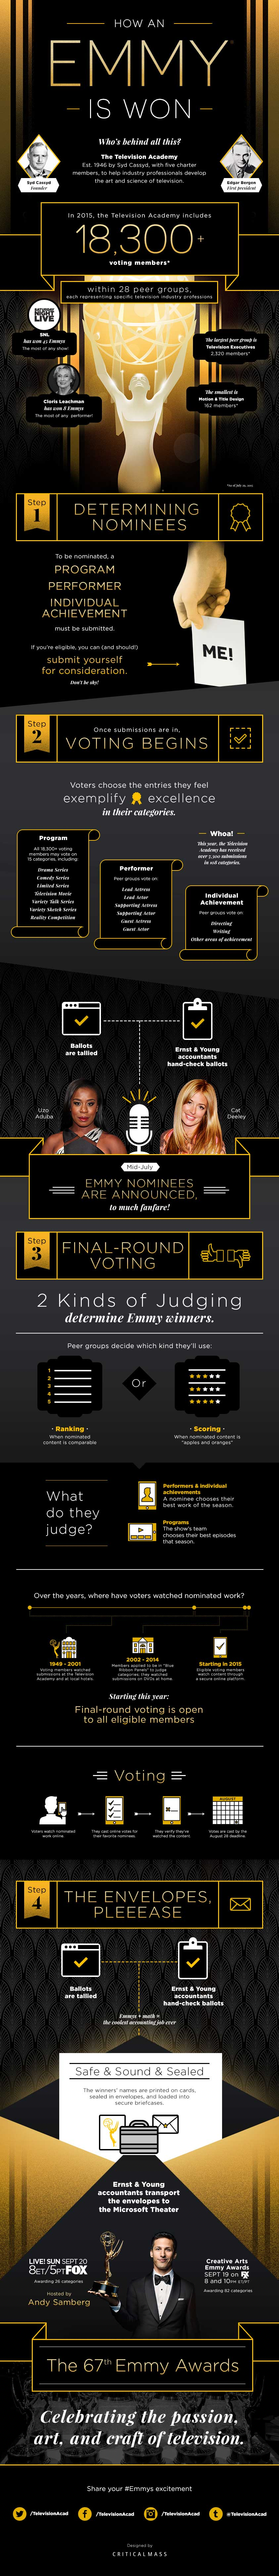 How an Emmy is Won? [Infographic]